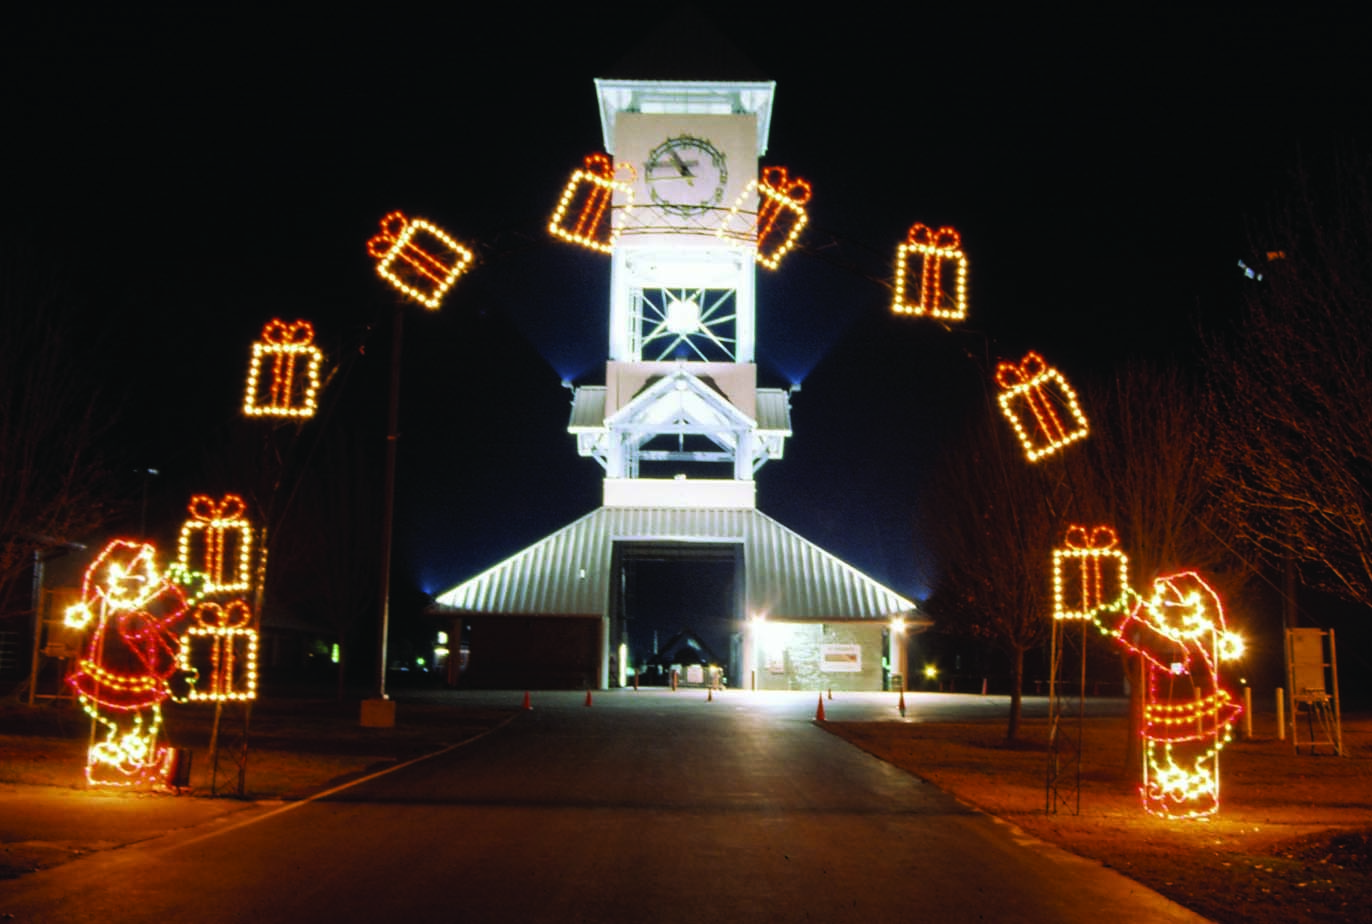 lighted arch outdoor christmas decorations illustrated on the holiday designs christmas decorations web site are ready to install - Christmas Arch Decorations